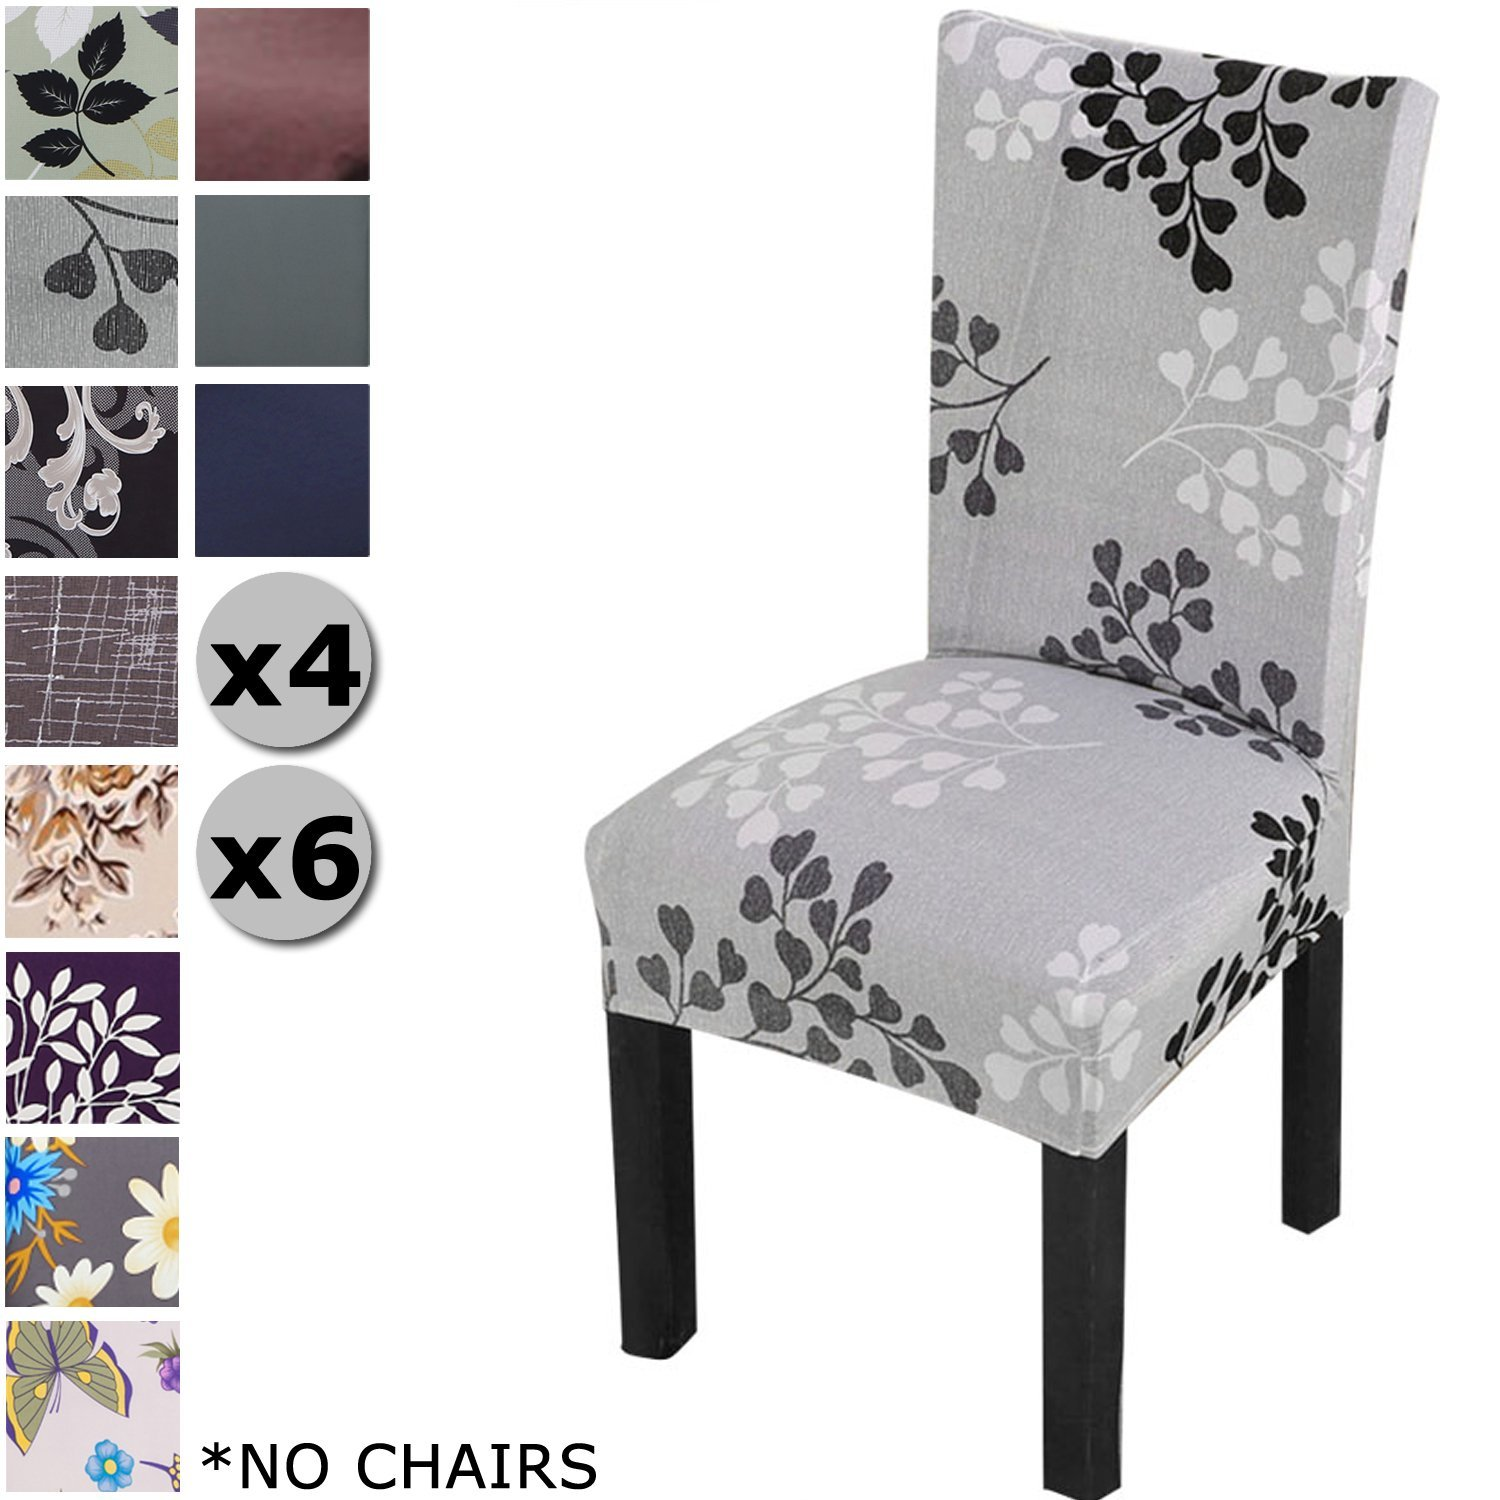 Yisun Modern Stretch Dining Chair Covers Removable Washable Spandex Slipcovers For High Chairs 4 6 Pcs Protective Light Grey